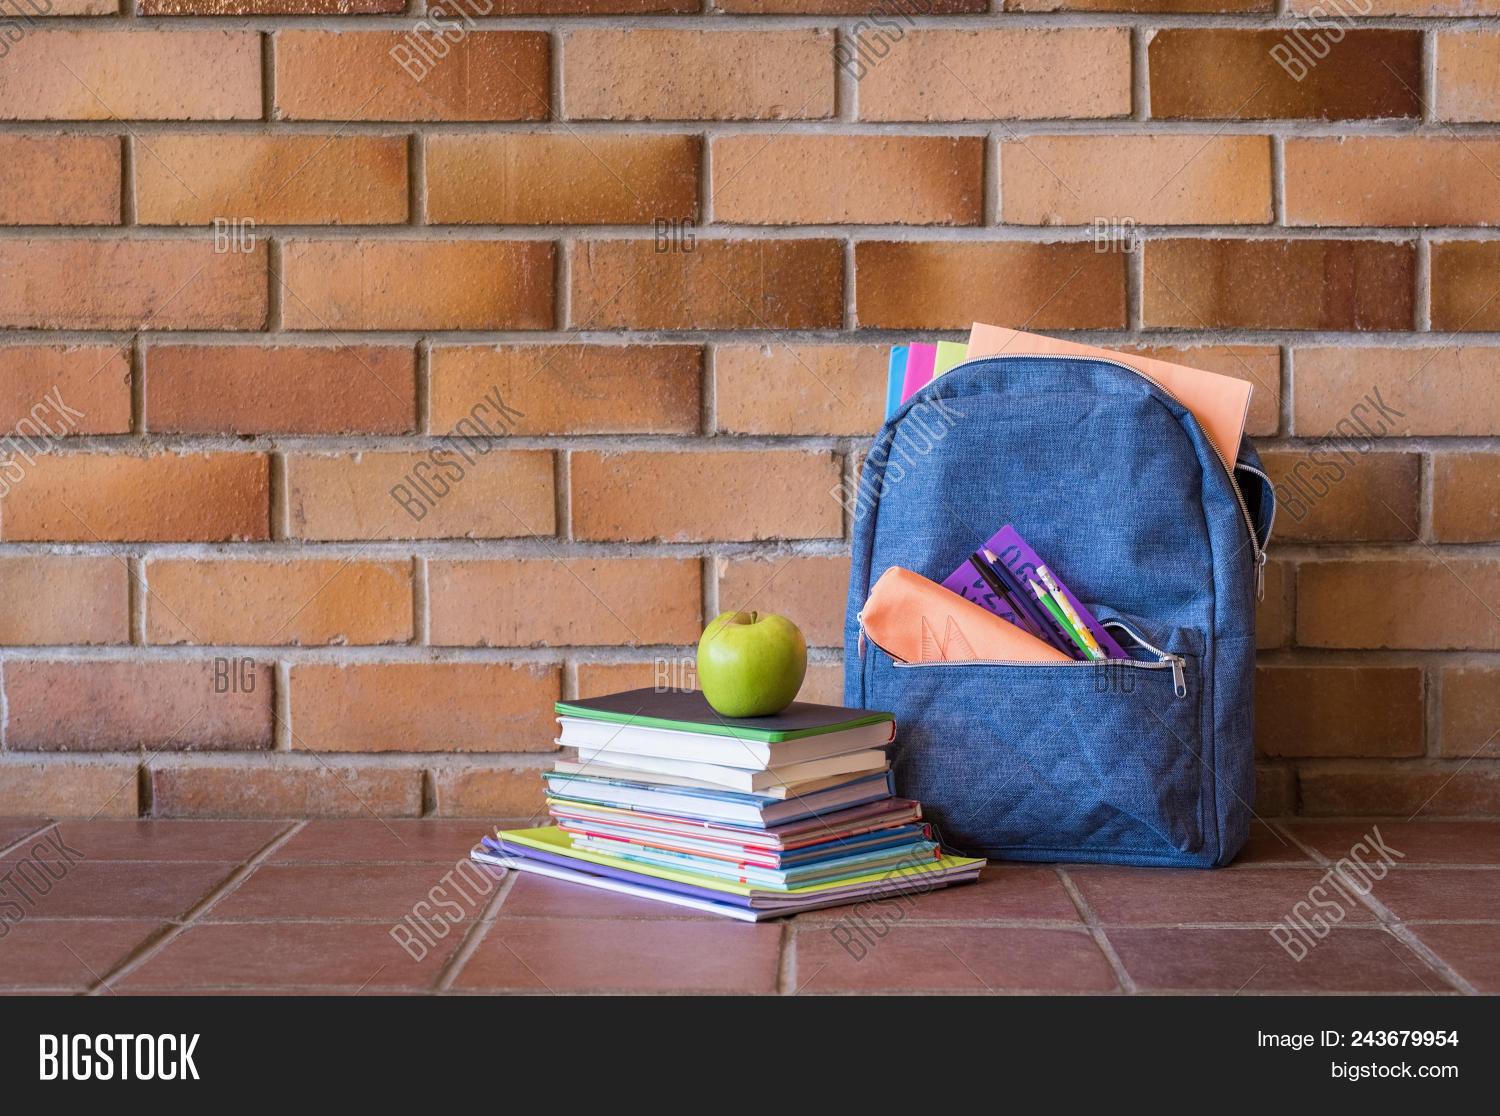 apple,back,back to school,background,backpack,bag,baggage,blue,book,brick,case,child,concept,copy space,education,educational,elementary,elementary school,fruit,haversack,heap,knowledge,learn,luggage,nobody,notebook,notebook paper,object,pen,pencil,pocket,primary,rucksack,school,stack,student,study,supply,wall,wooden